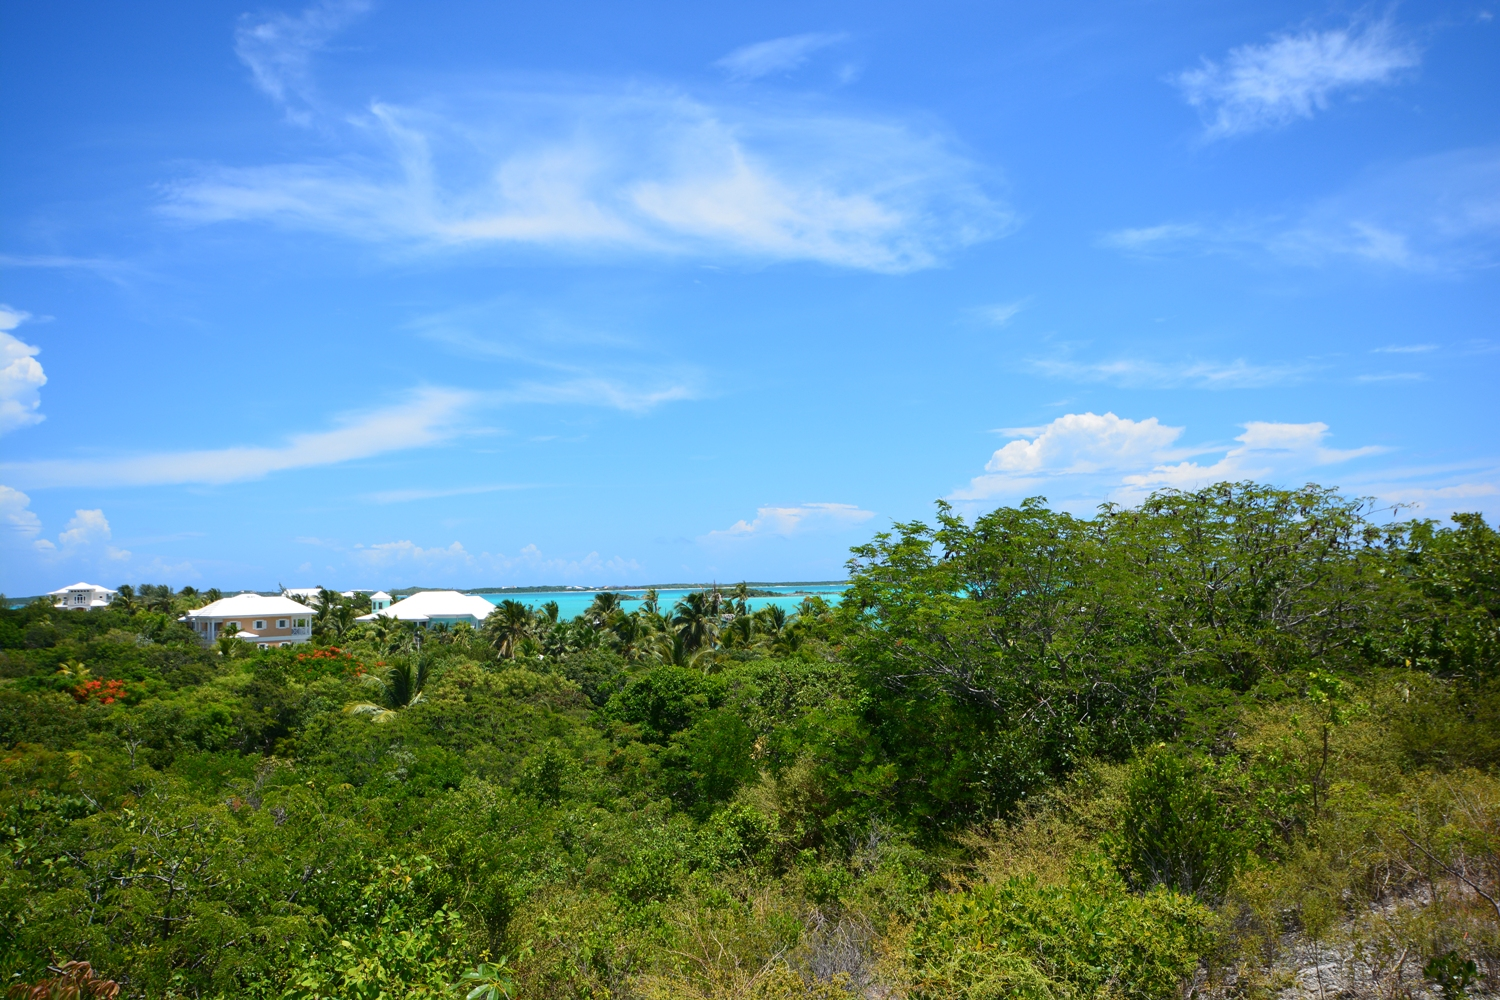 Land for Sale at Excellent Opportunity to Own and Build at February Point (XS11356) February Point, Exuma, Bahamas